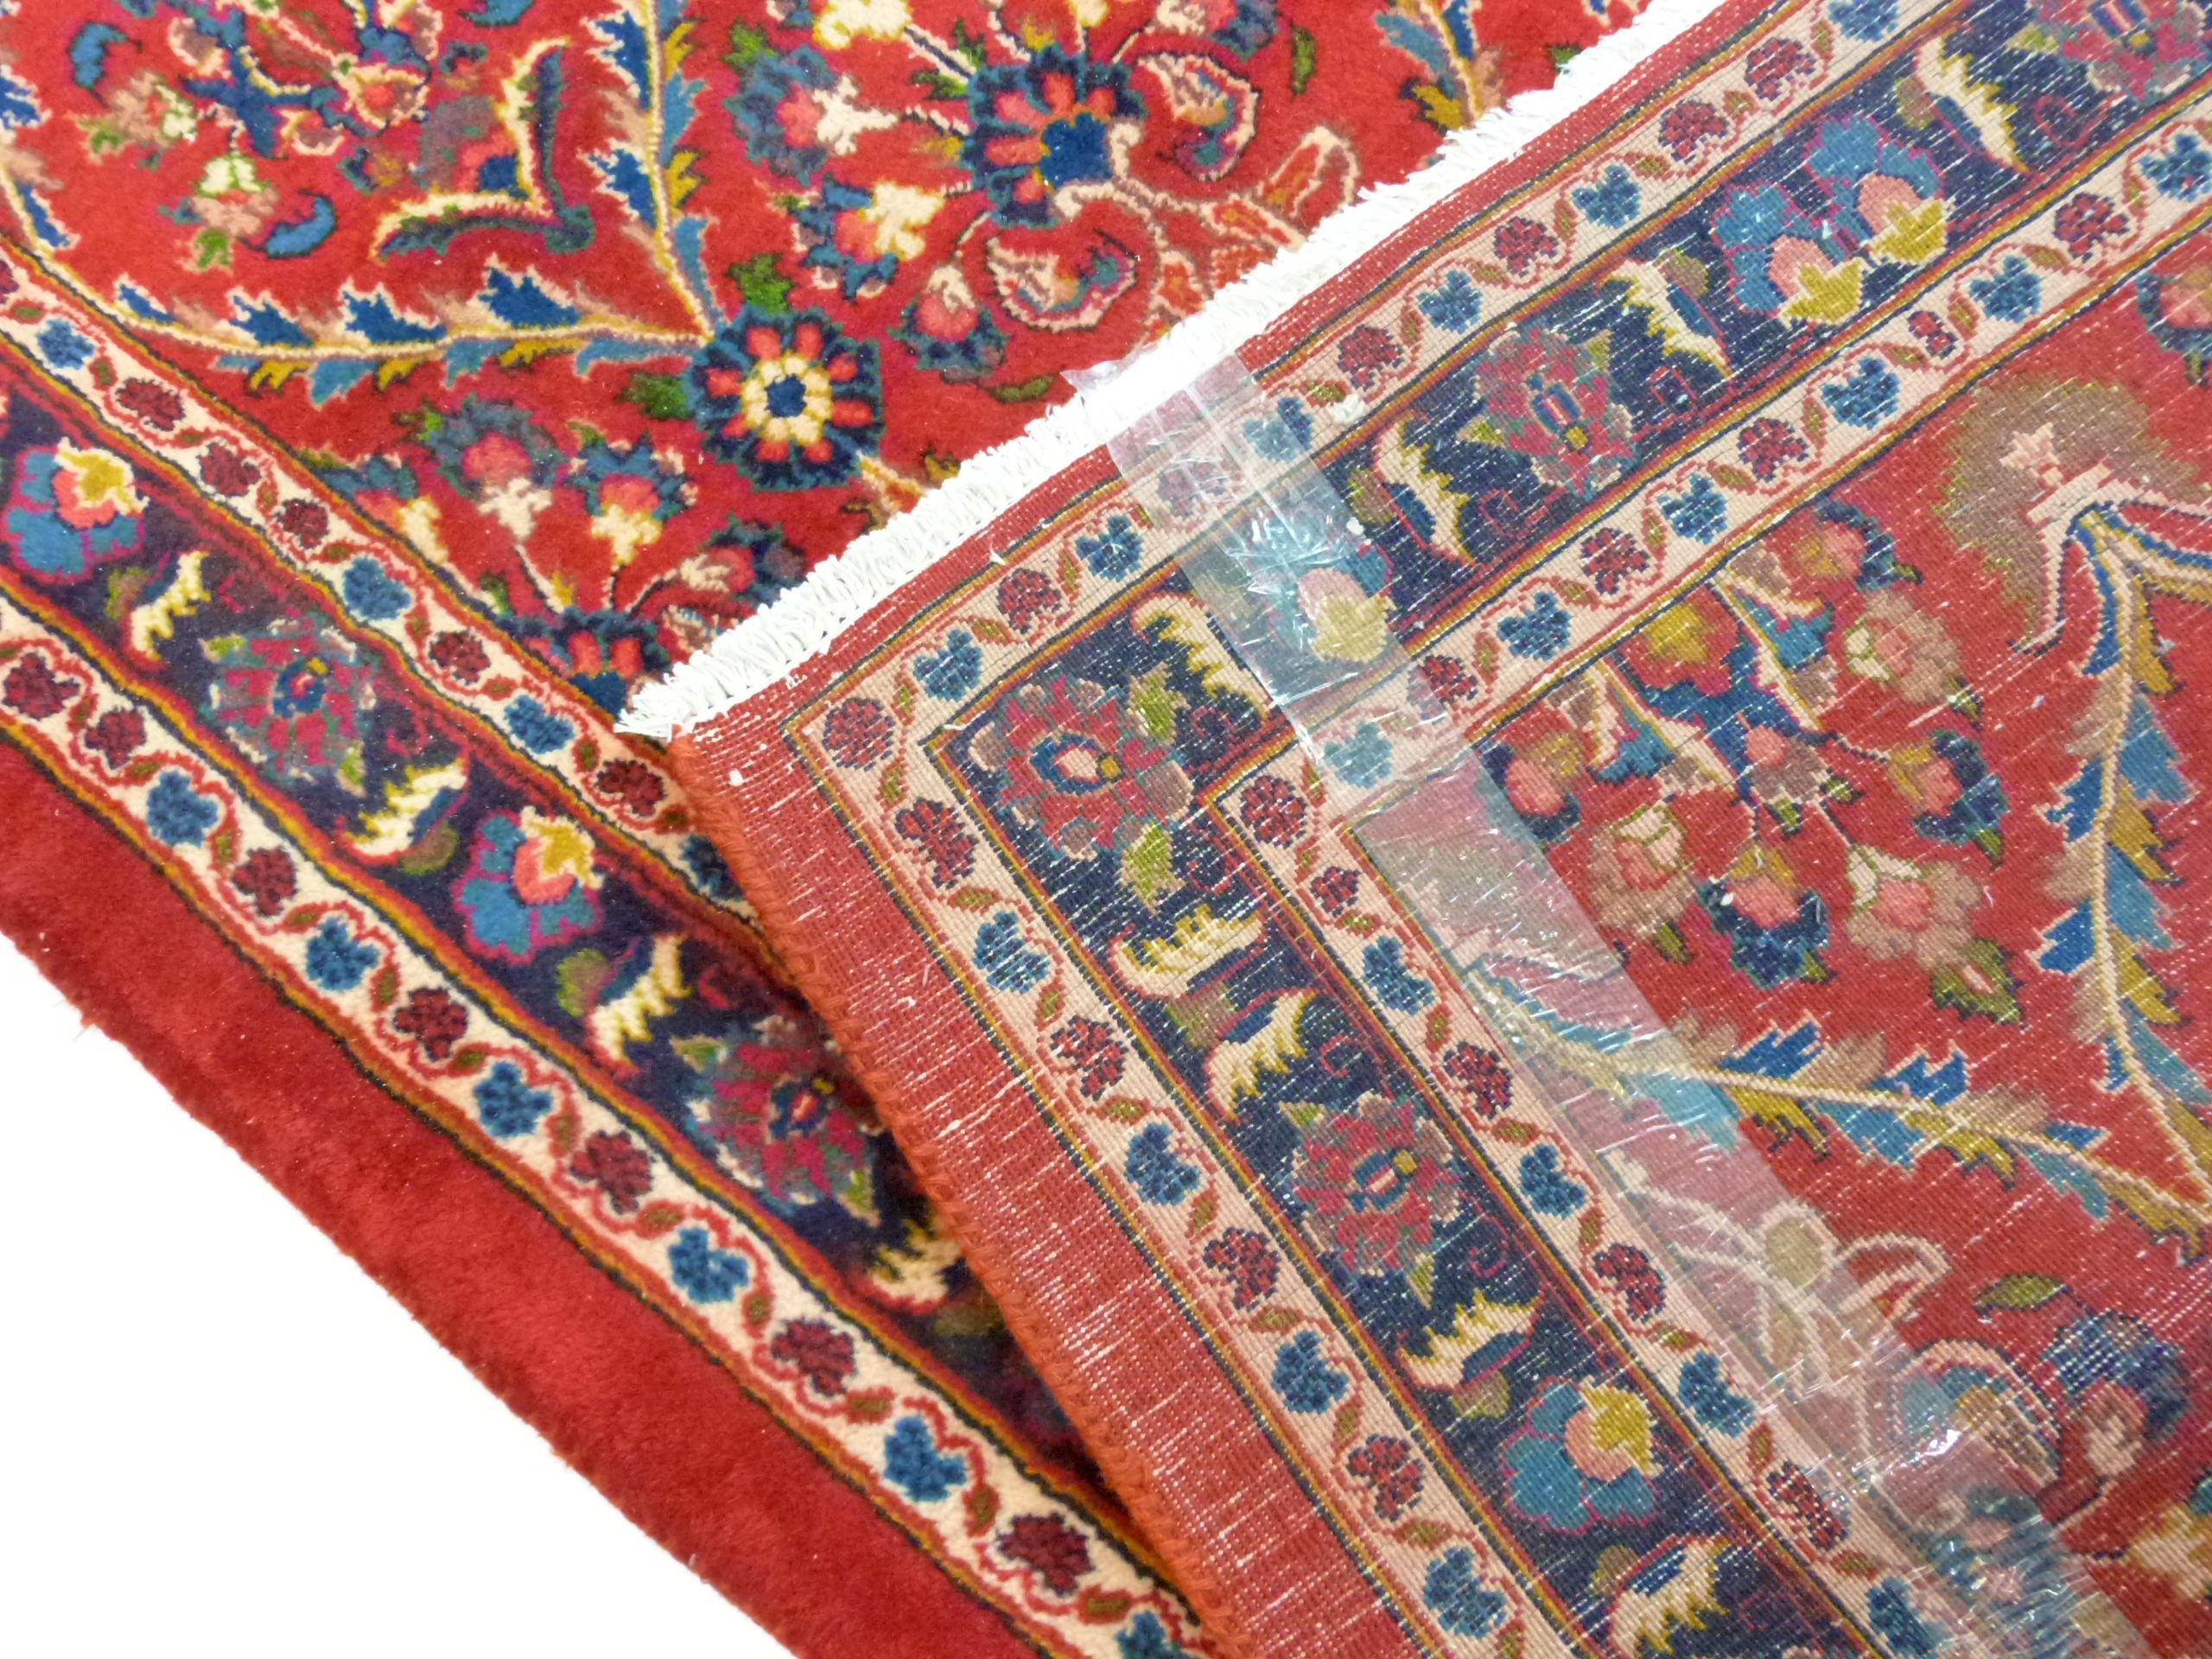 Large red ground Persian Kashan Runner, with all-over floral pattern 397cm x 93cm approximately No - Image 5 of 6